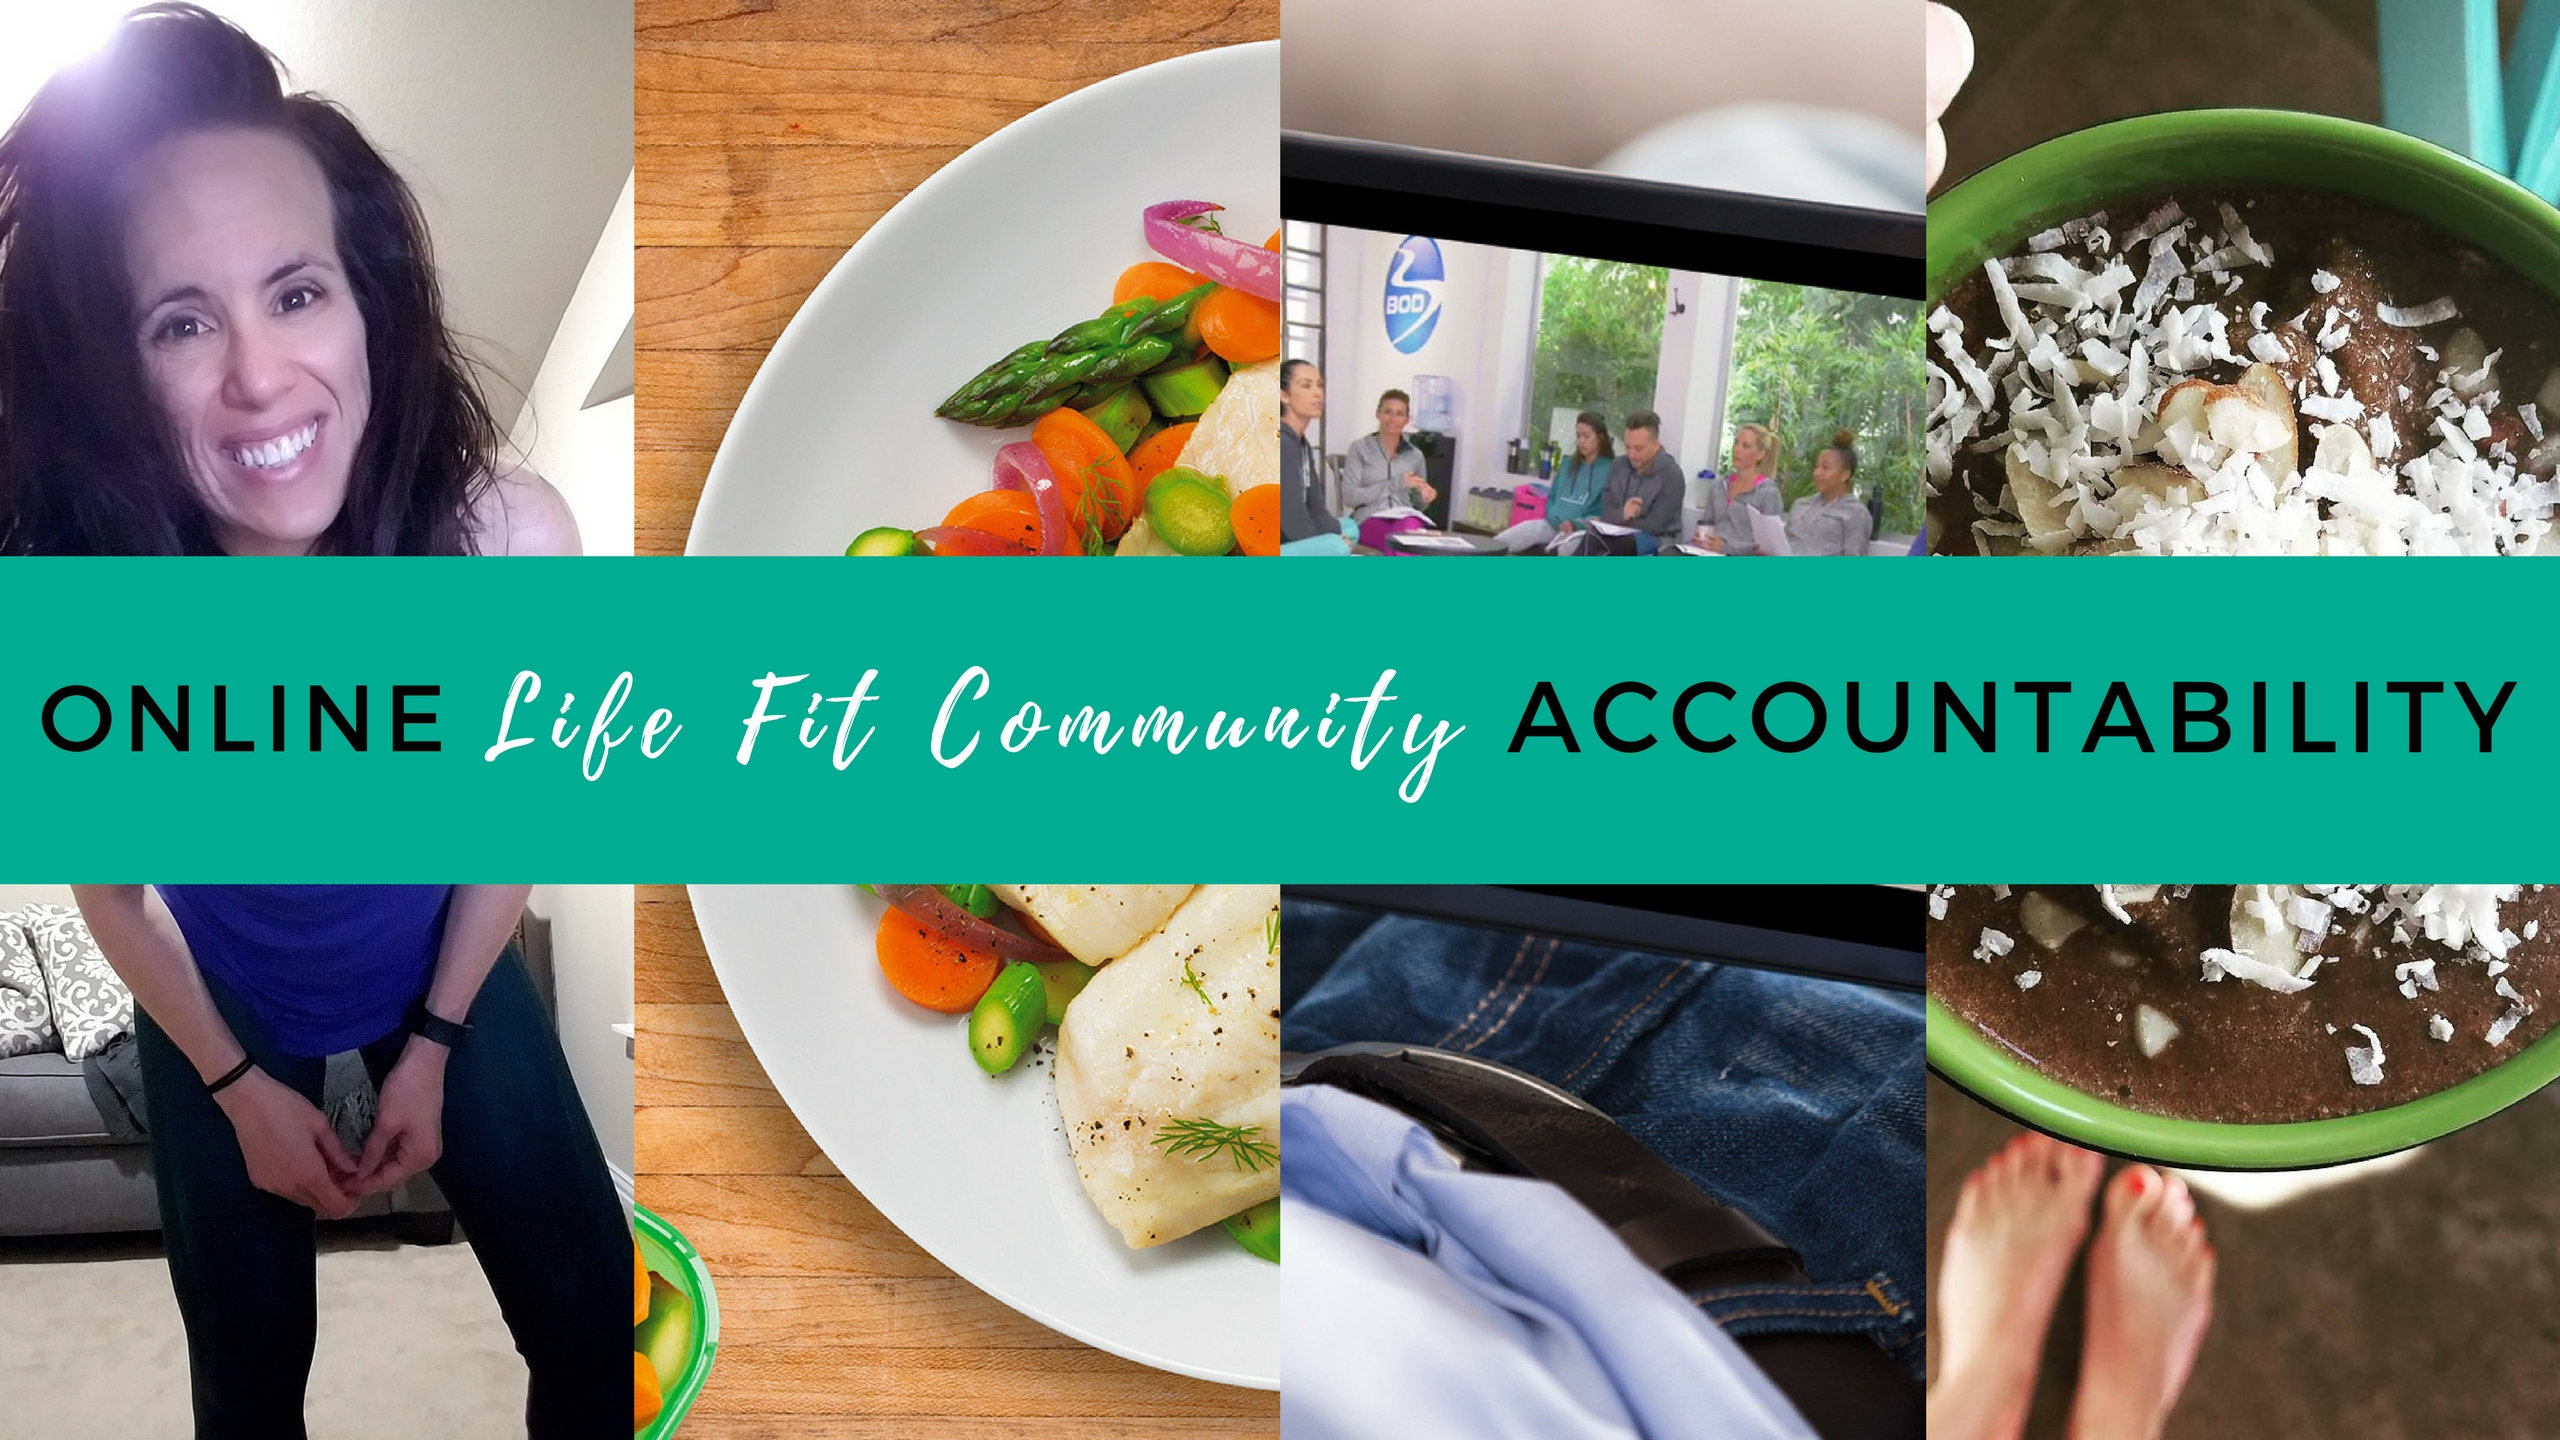 ONLINE life fit accountability